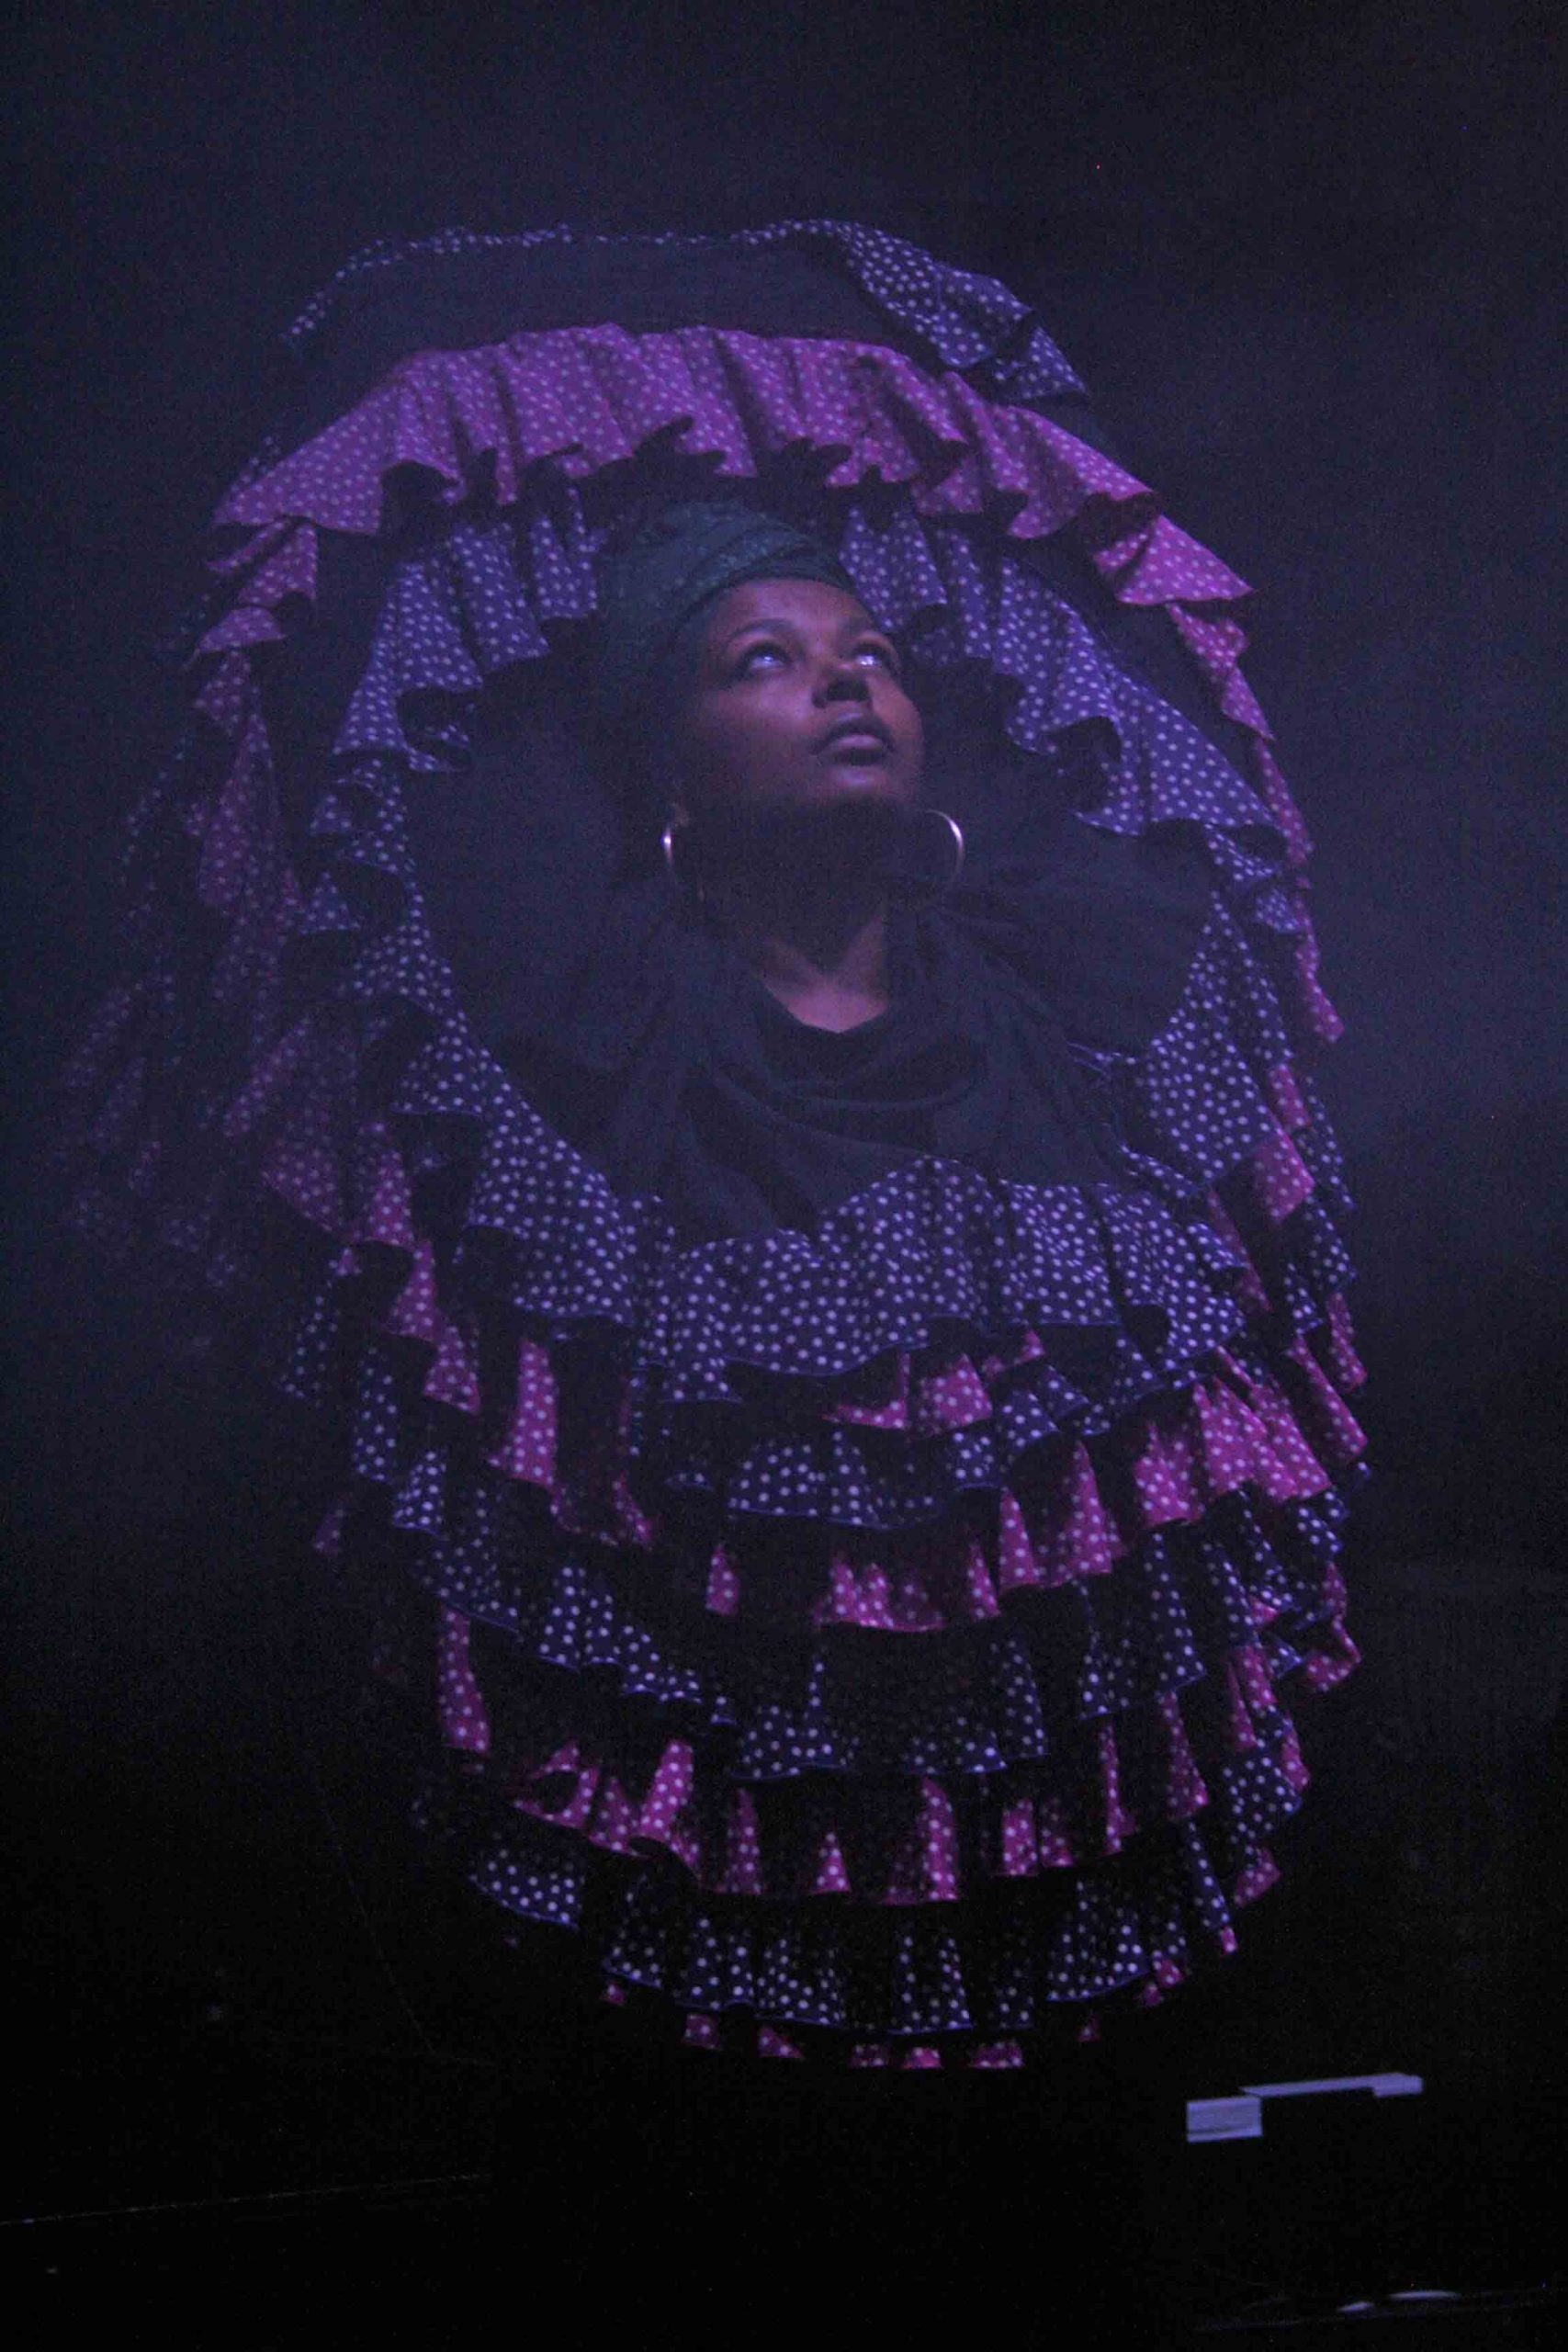 Oslo Afro Arts Performer 2019